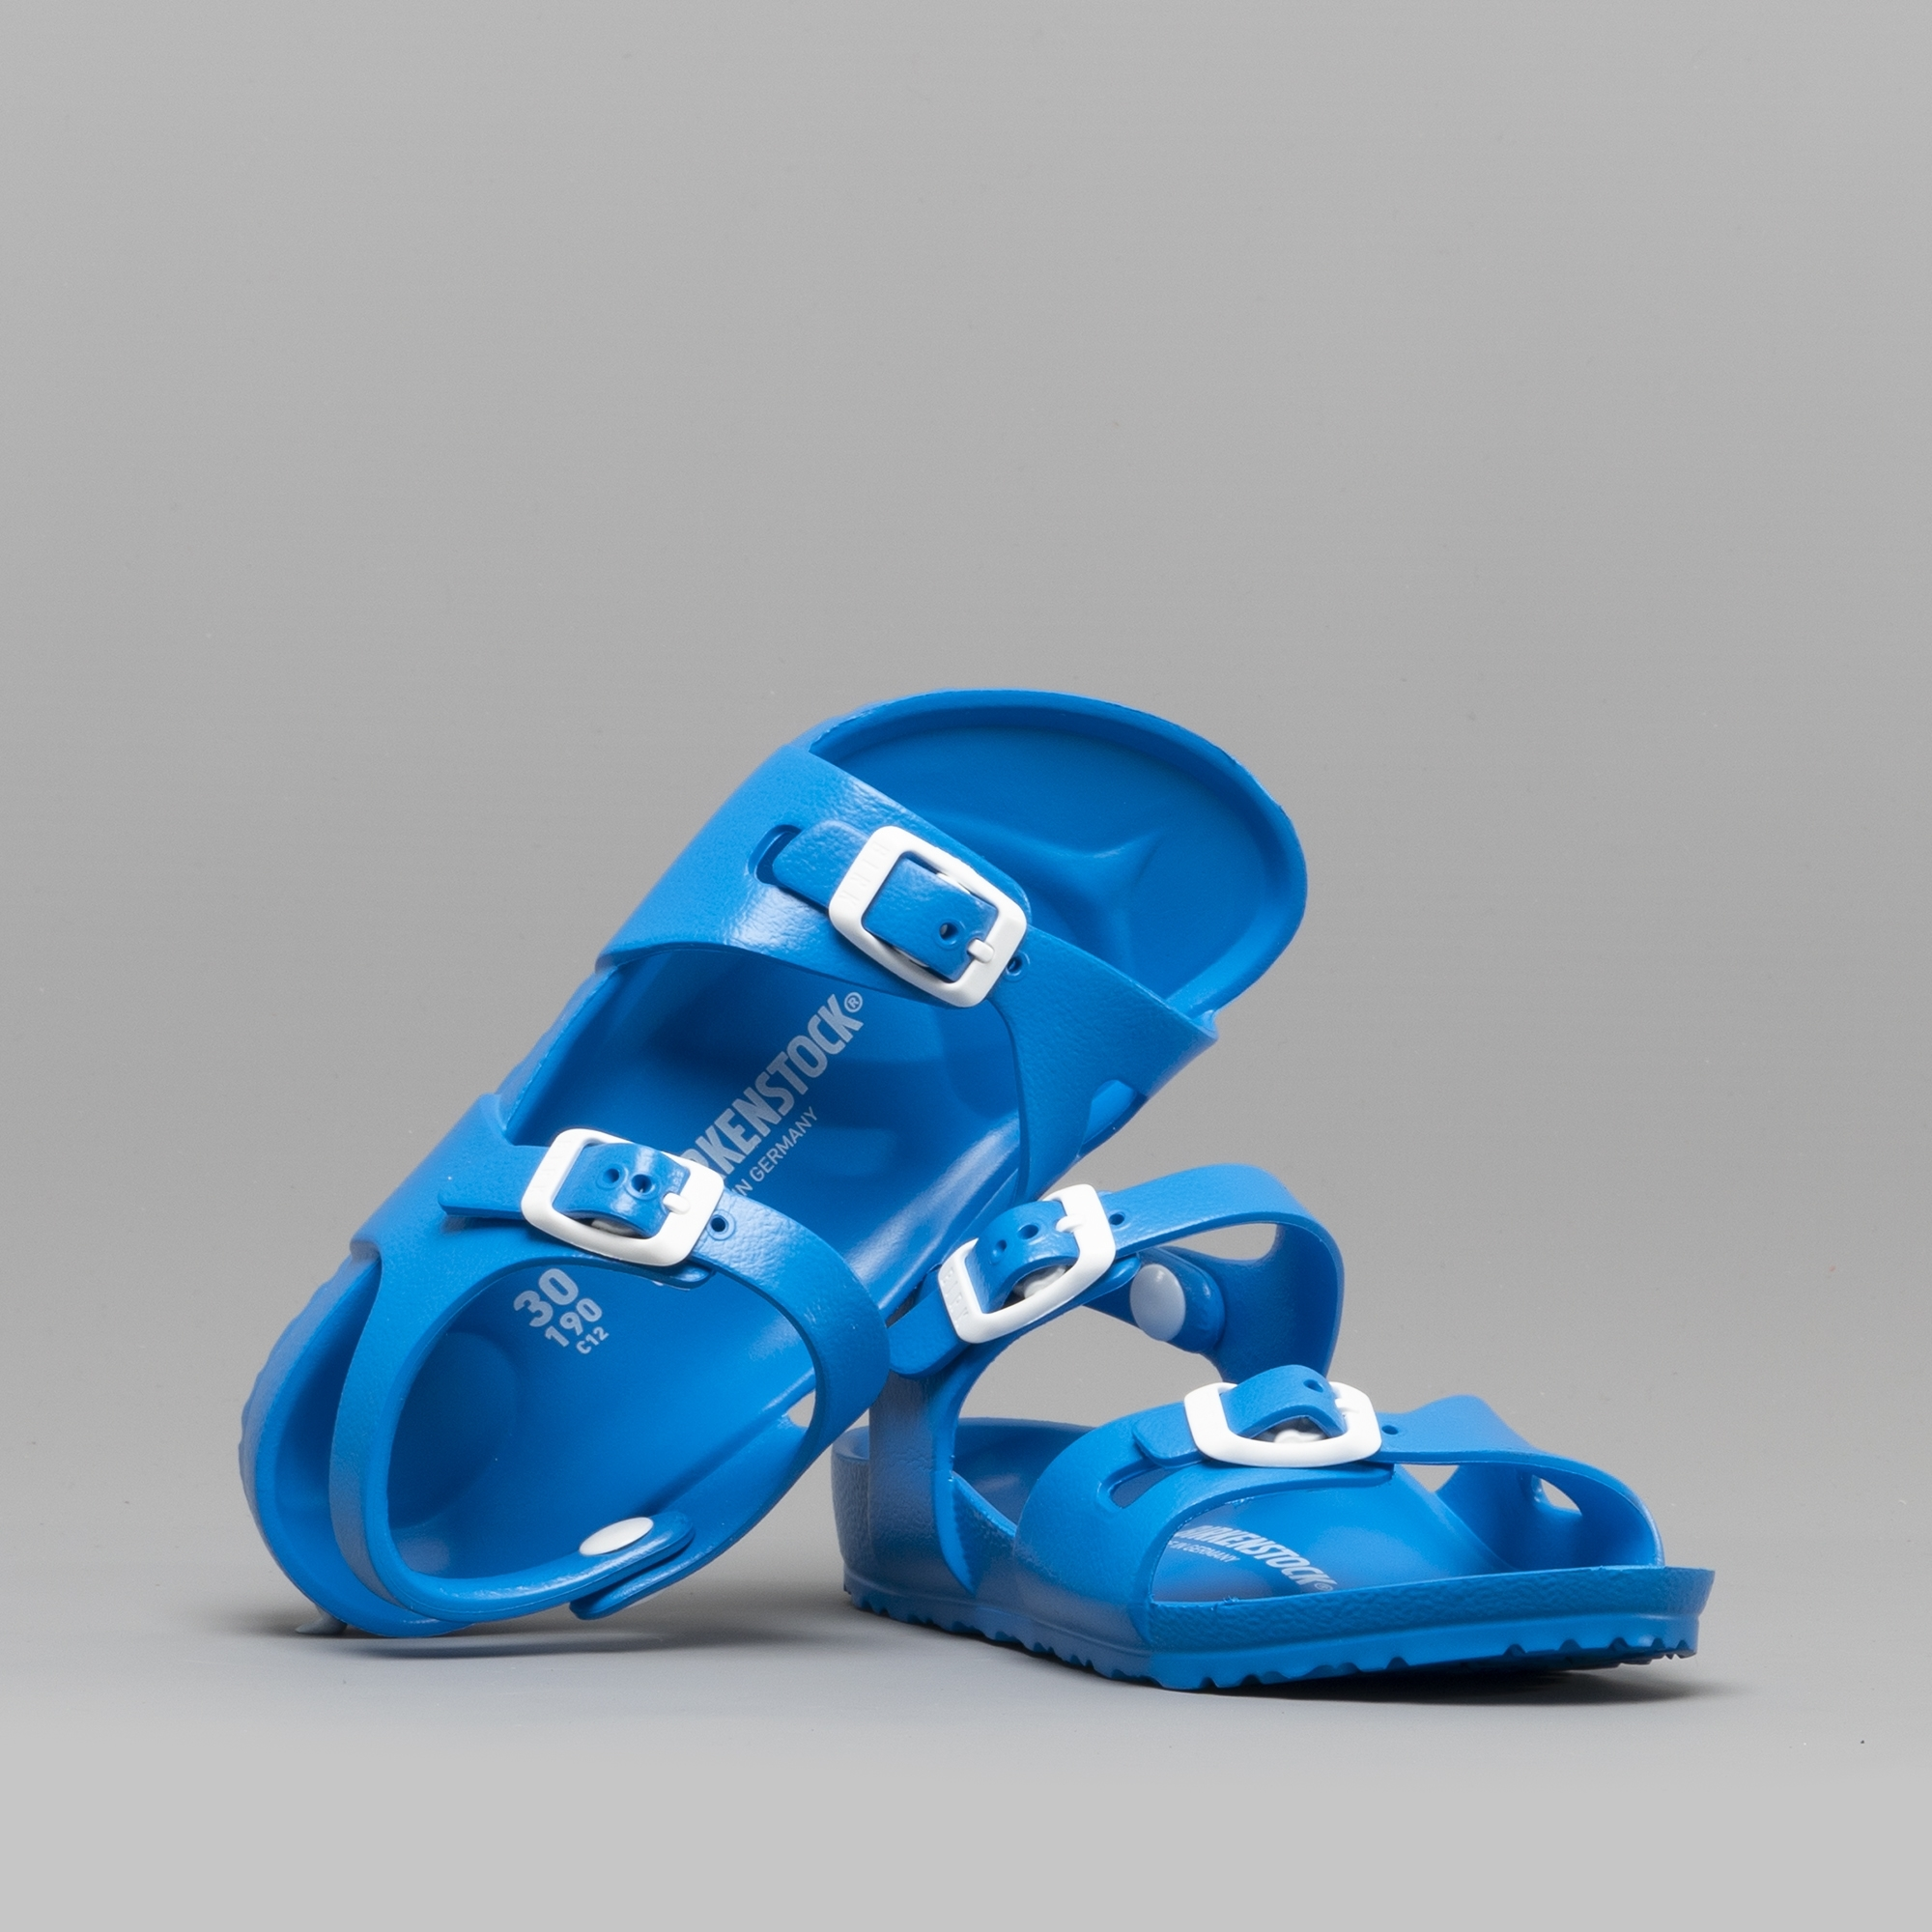 94d5cf5485ff Birkenstock RIO 1003535 Kids Two Strap Sandals Scuba Blue